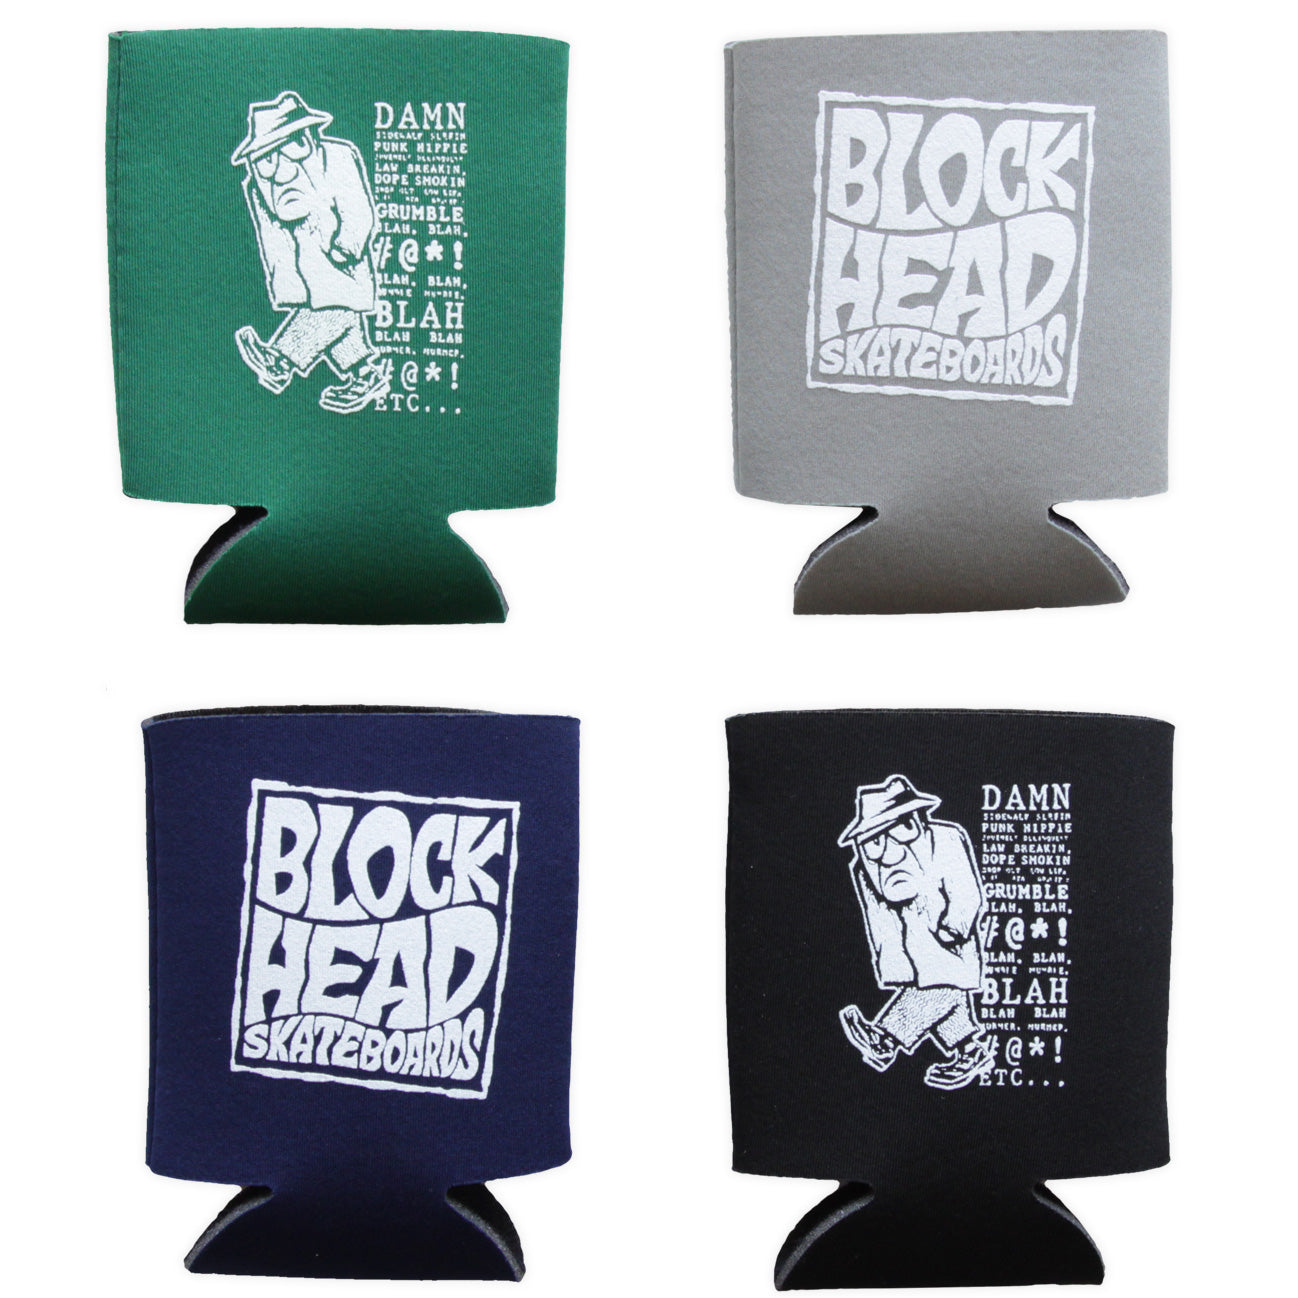 Blockhead Grumpy can koozies - SOLD OUT